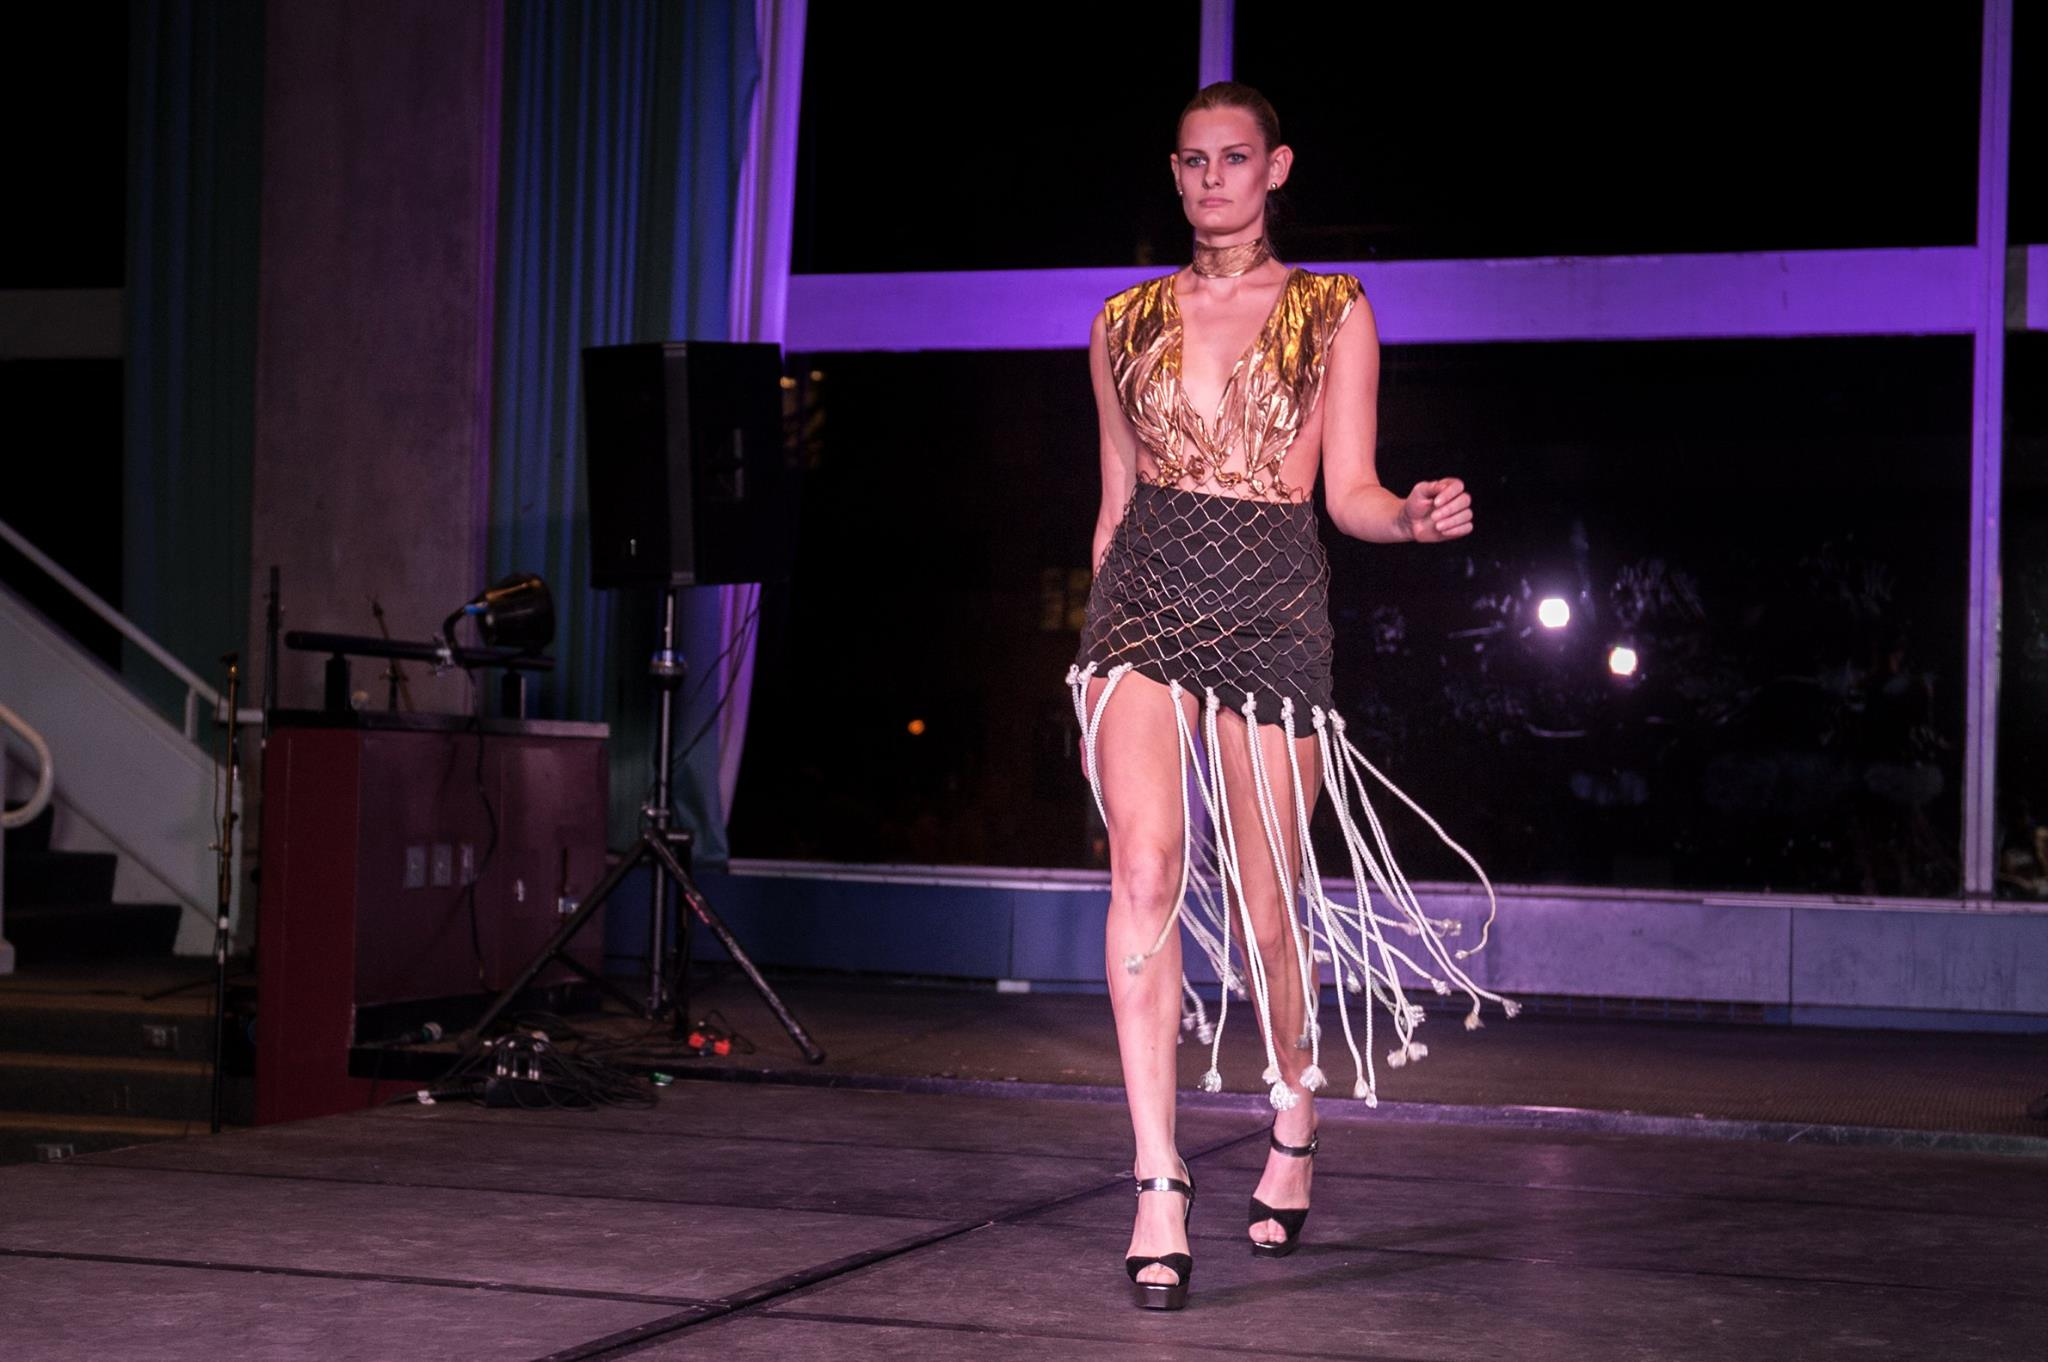 A model struts down the catwalk during the 2015 Trashion Show.